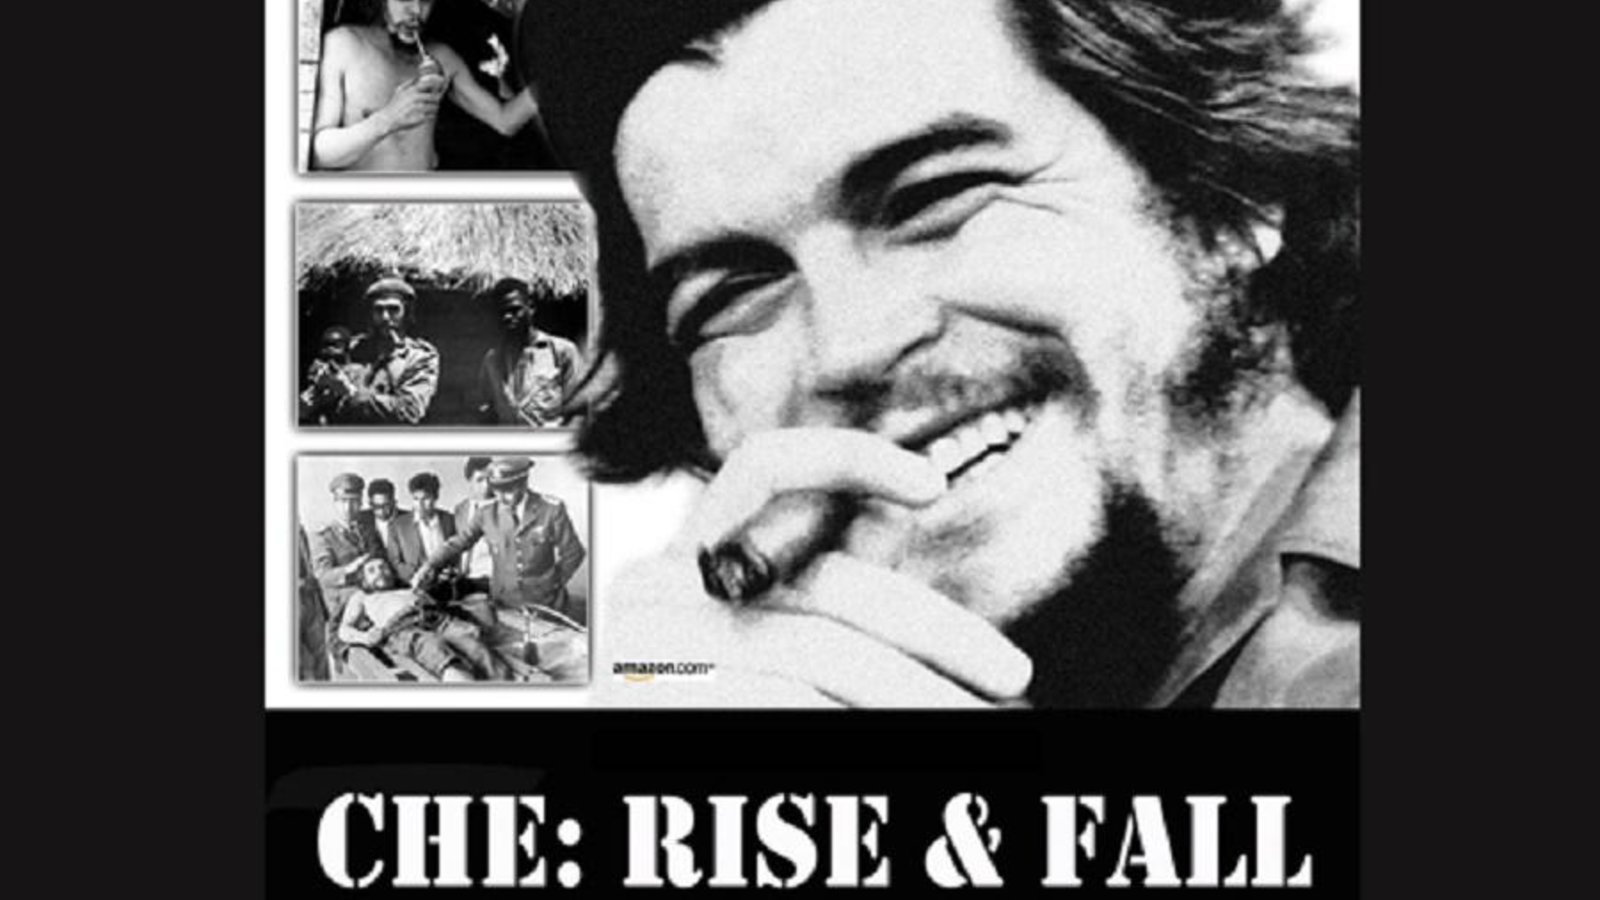 Che Rise and Fall - The Life of Revolutionary Che Guevara